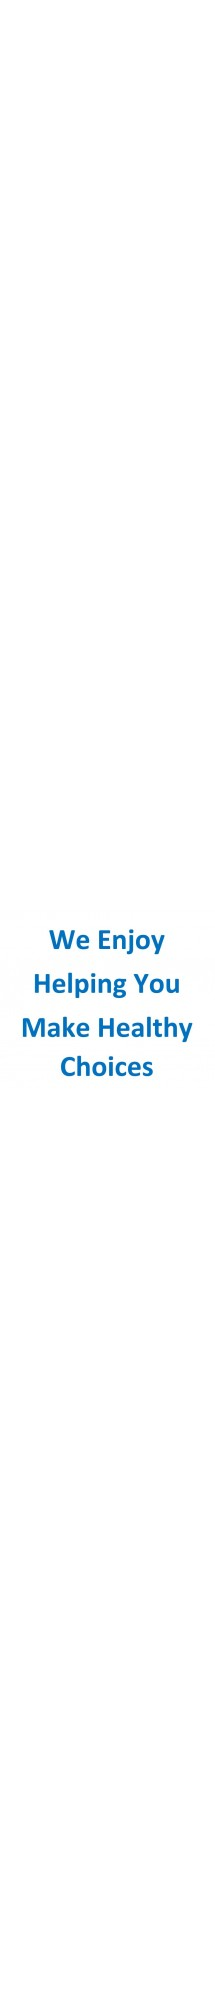 We Enjoy Helping You Make Healthy Choices